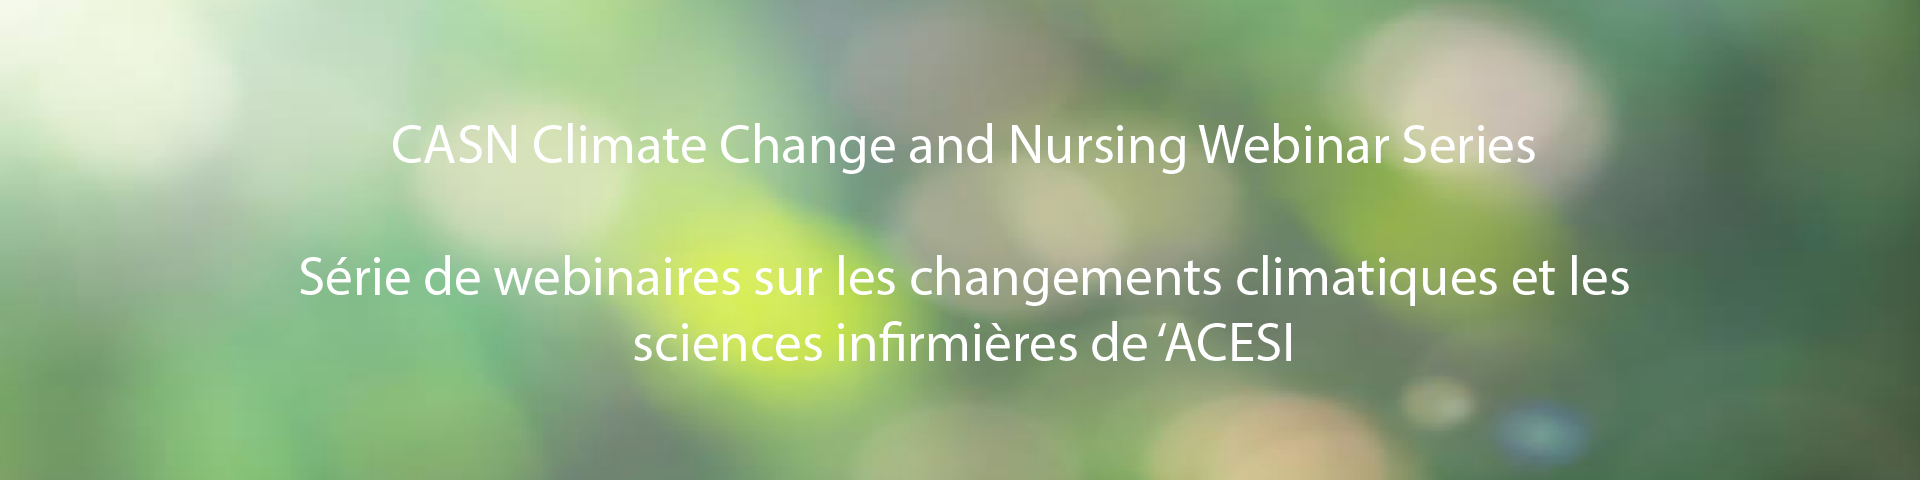 CASN Climate Change and Nursing Webinar Series